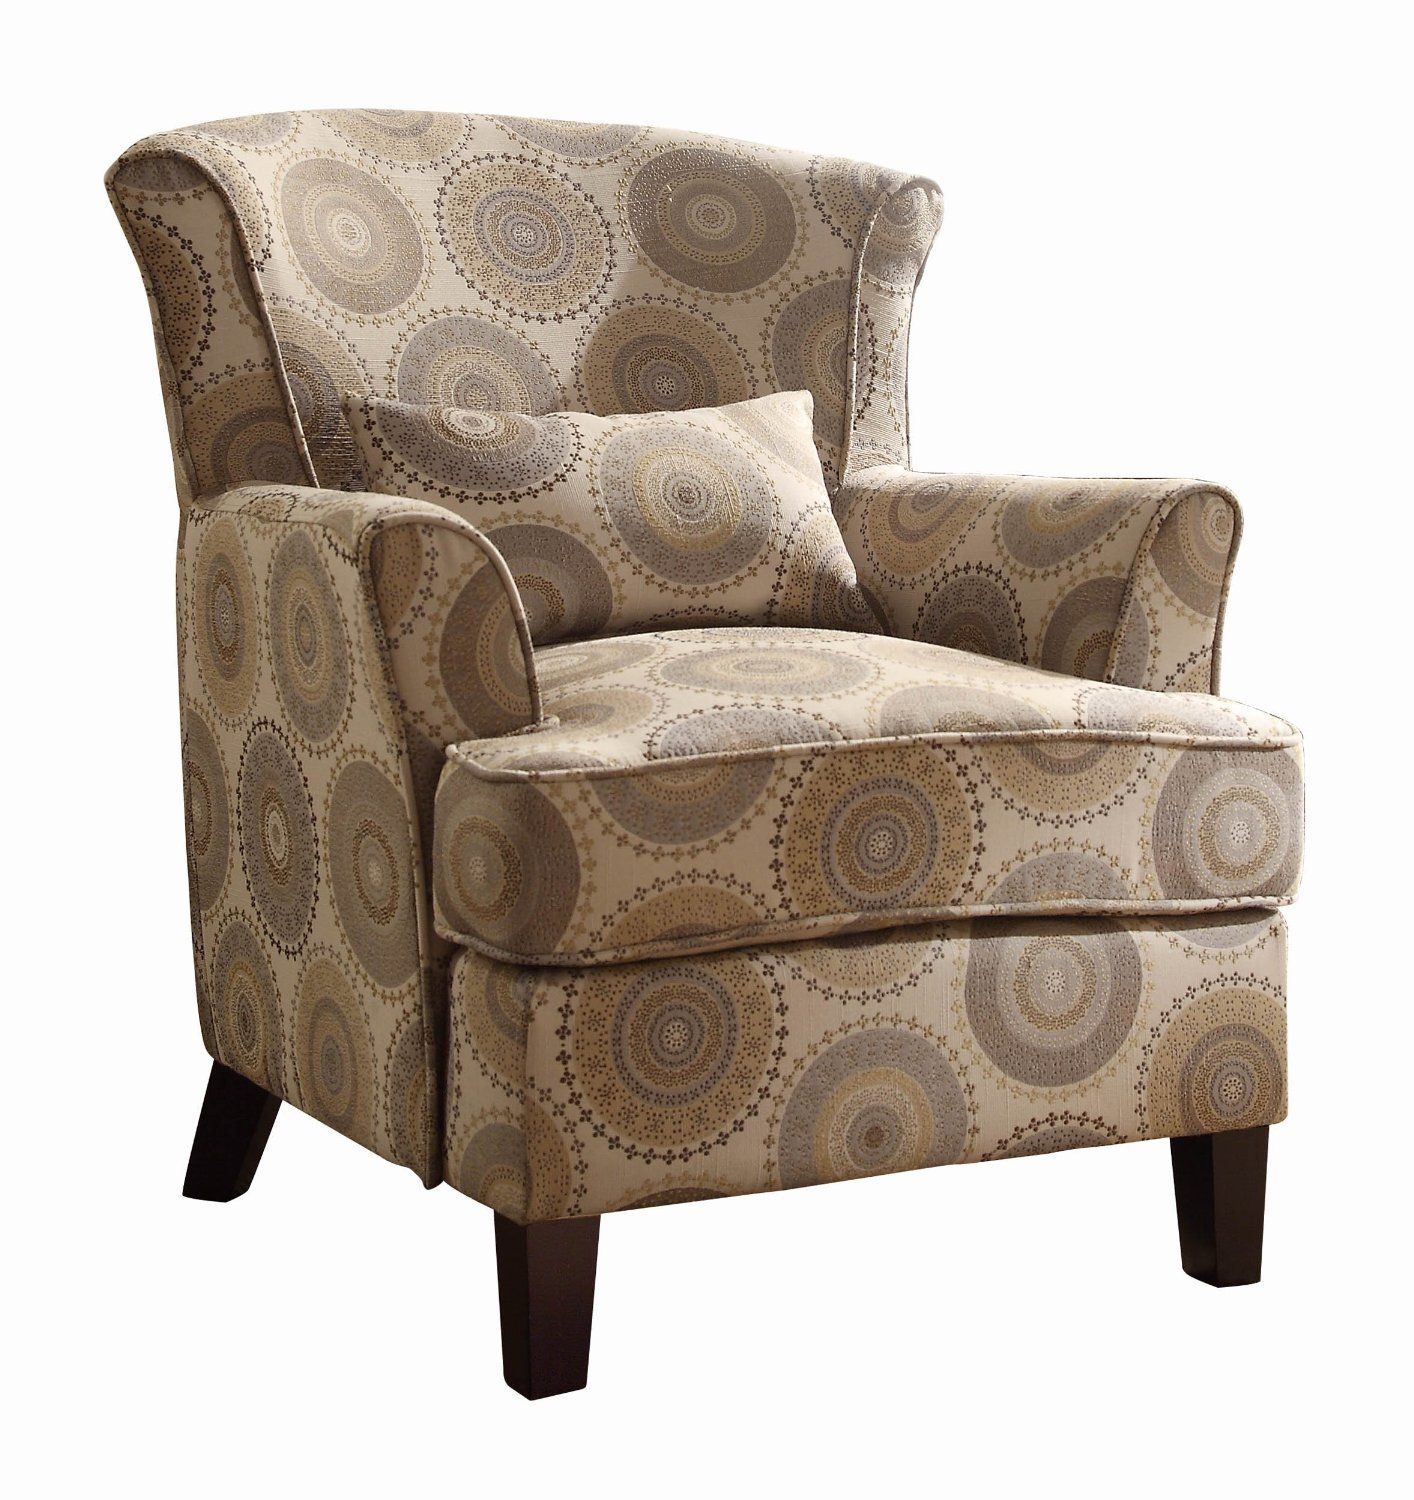 Comfortable arm chairs - Comfortable Fabric Patterned Armchair Google Search Best Chairsarm